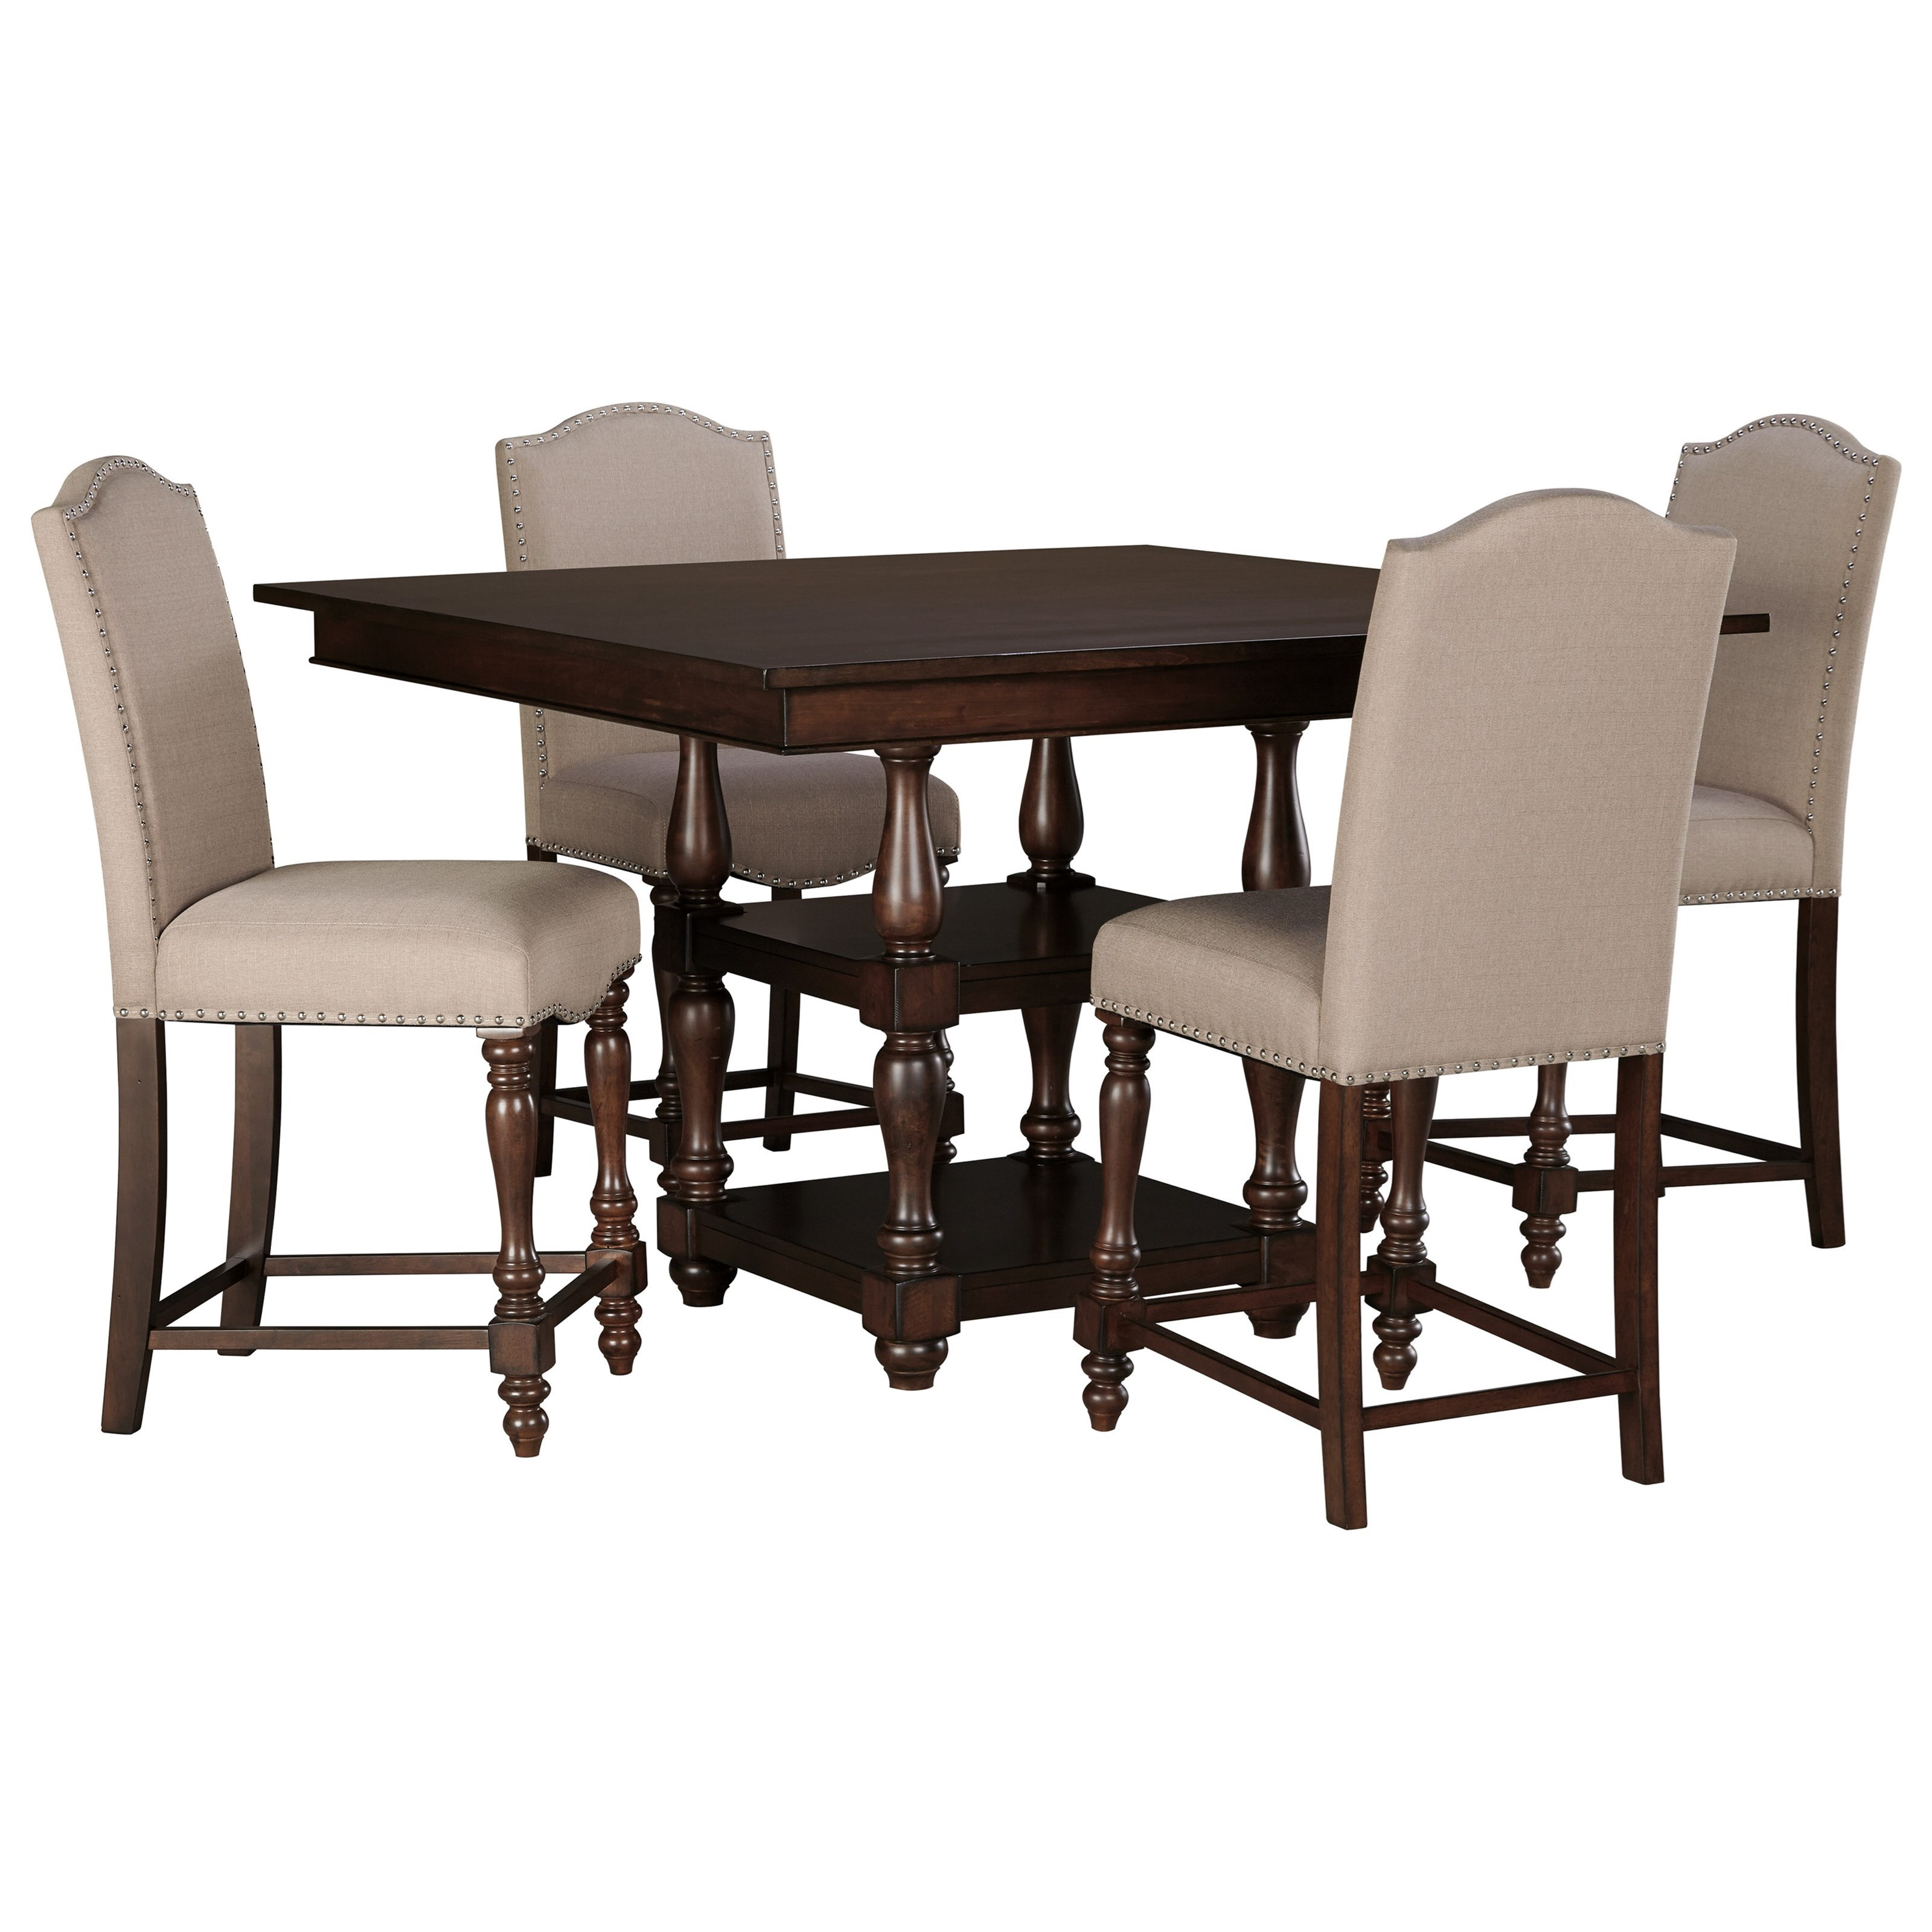 signature design by ashley furniture baxenburg 5 piece square dining room counter table set. Black Bedroom Furniture Sets. Home Design Ideas